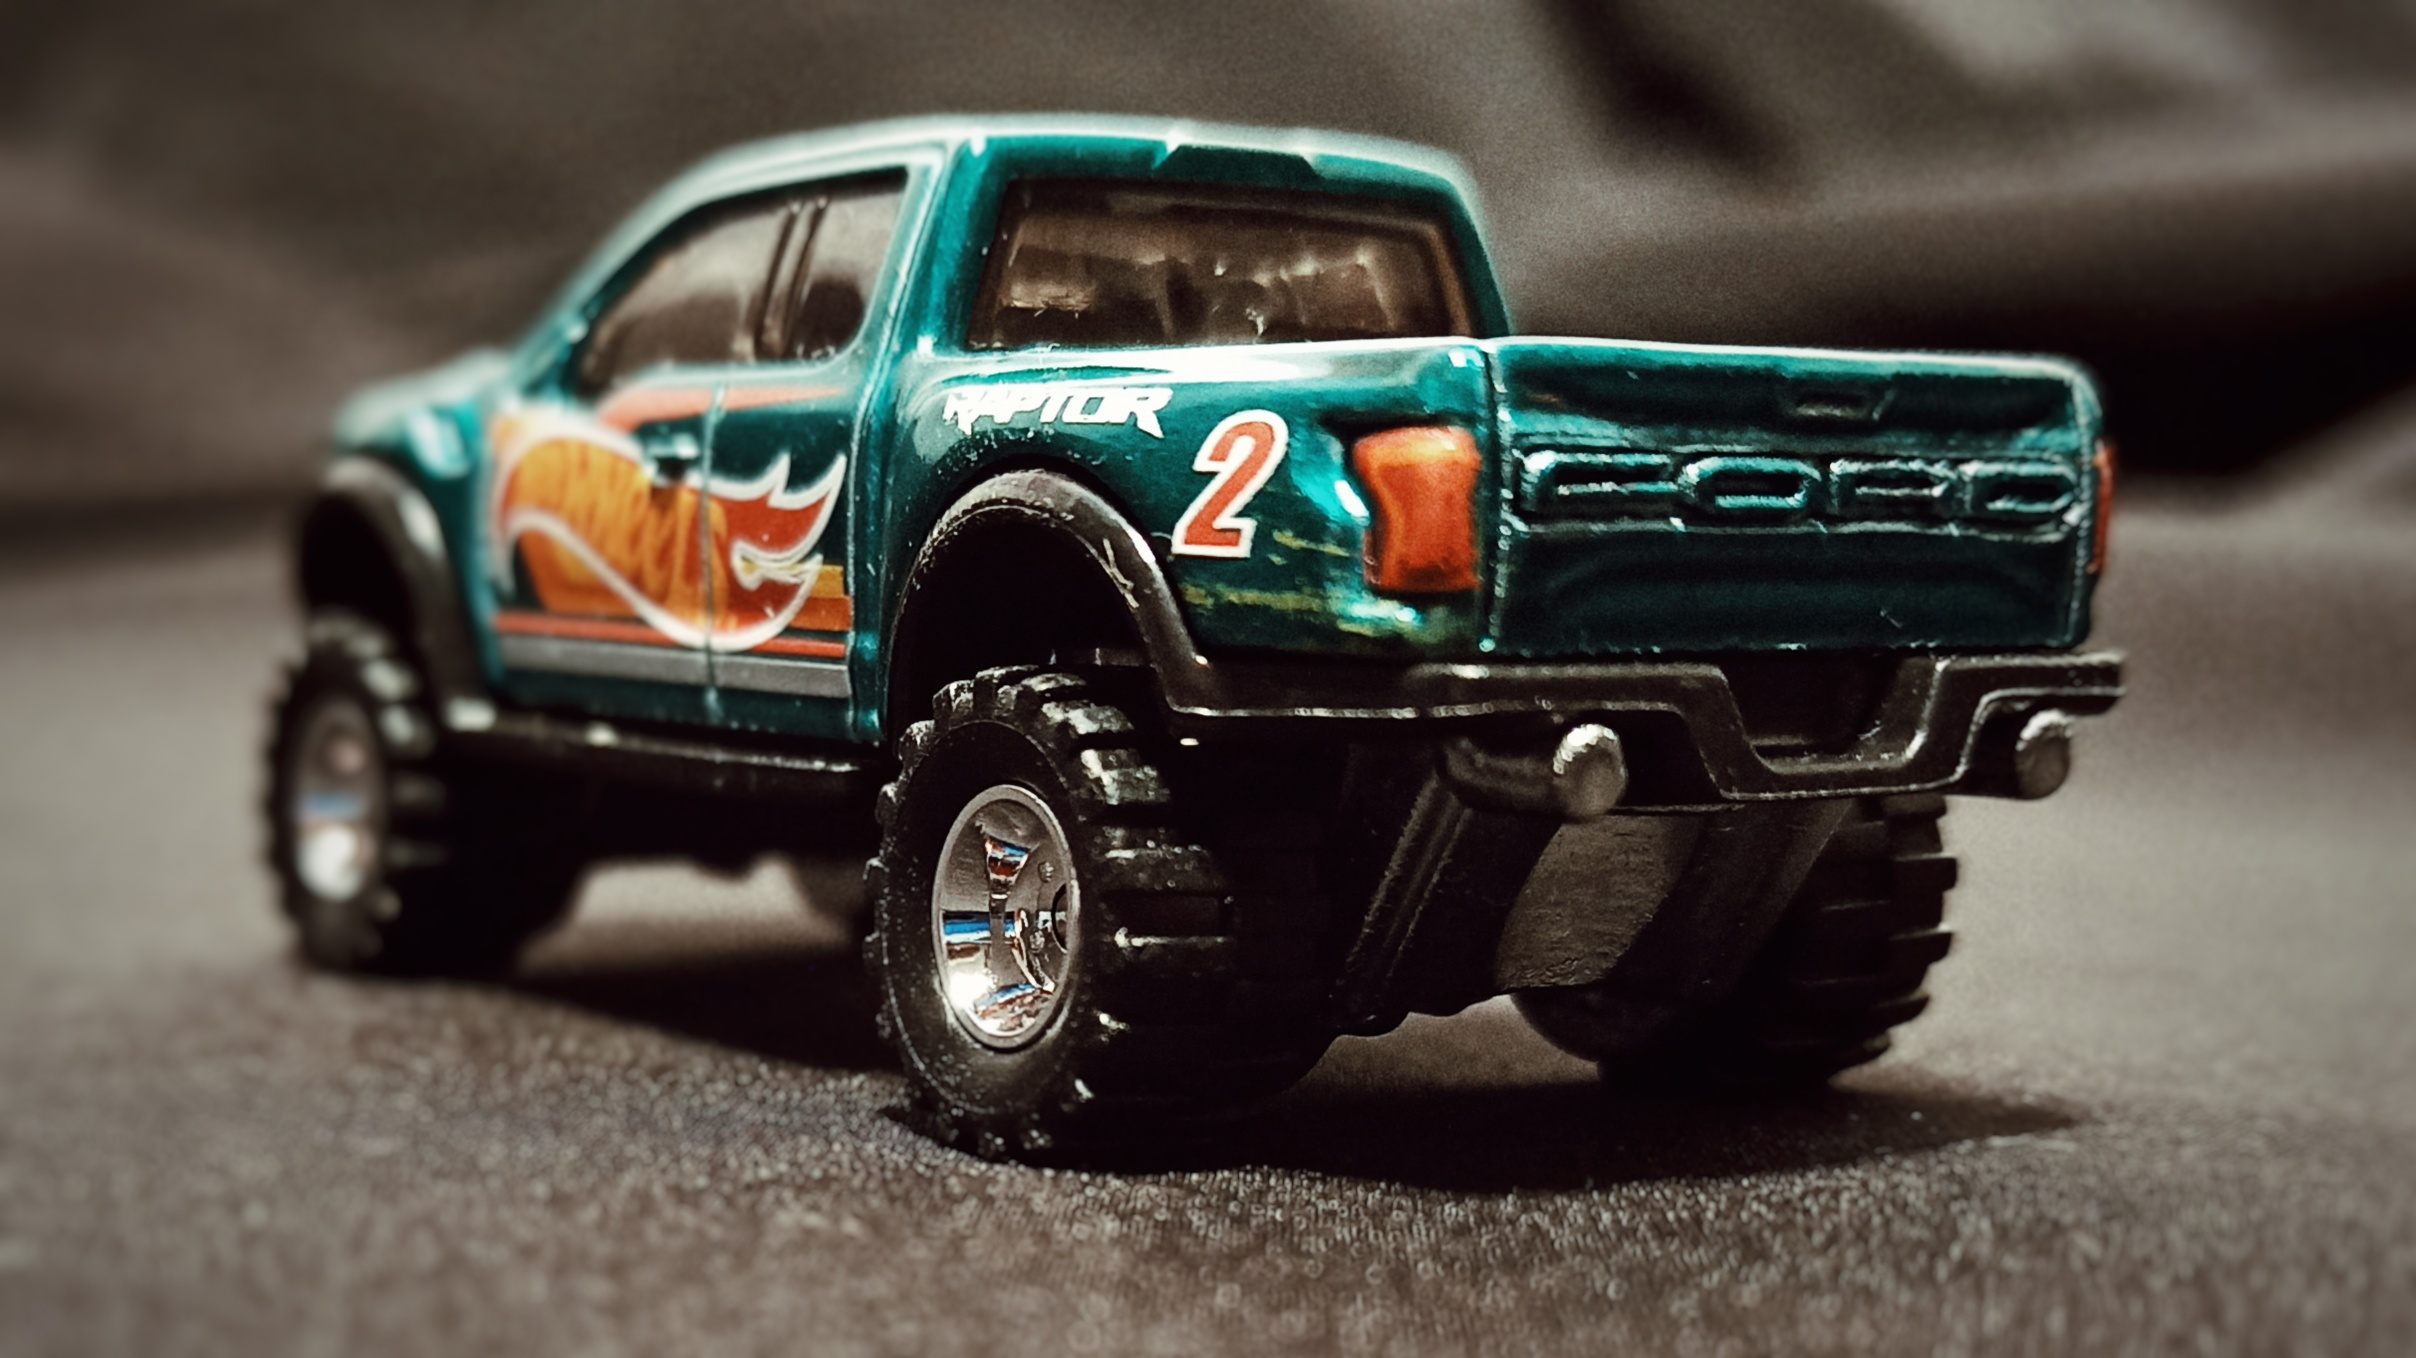 Hot Wheels '17 Ford F-150 Raptor (GTD72) 2021 Collector Edition (Dollar General Mail-in) spectraflame aqua green back angle